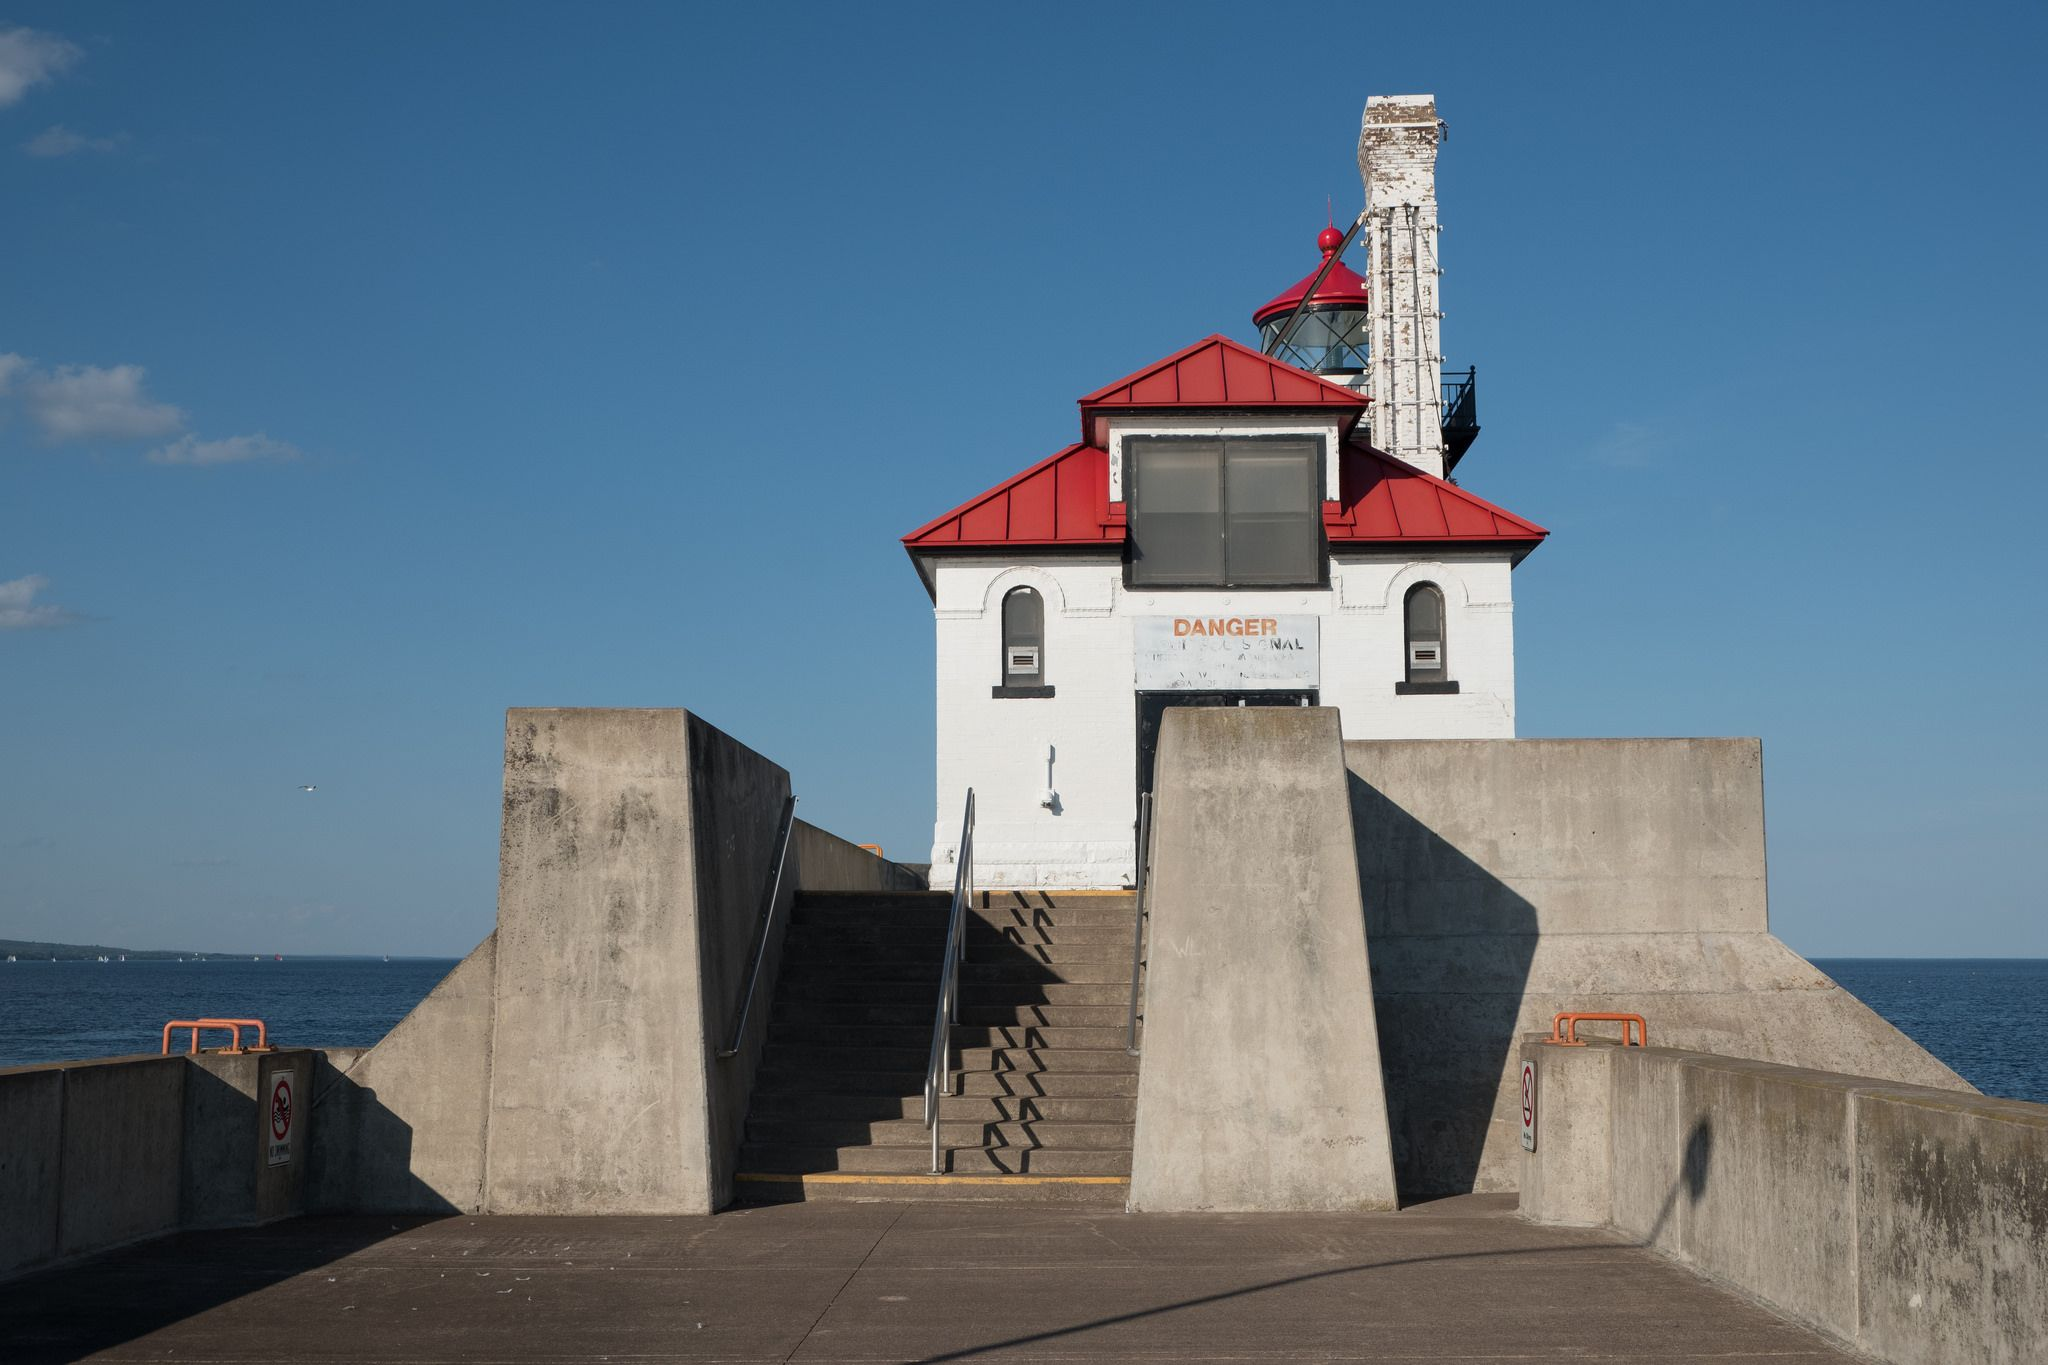 https://flic.kr/p/Vn46ty | Duluth South Breakwater Outer Lighthouse